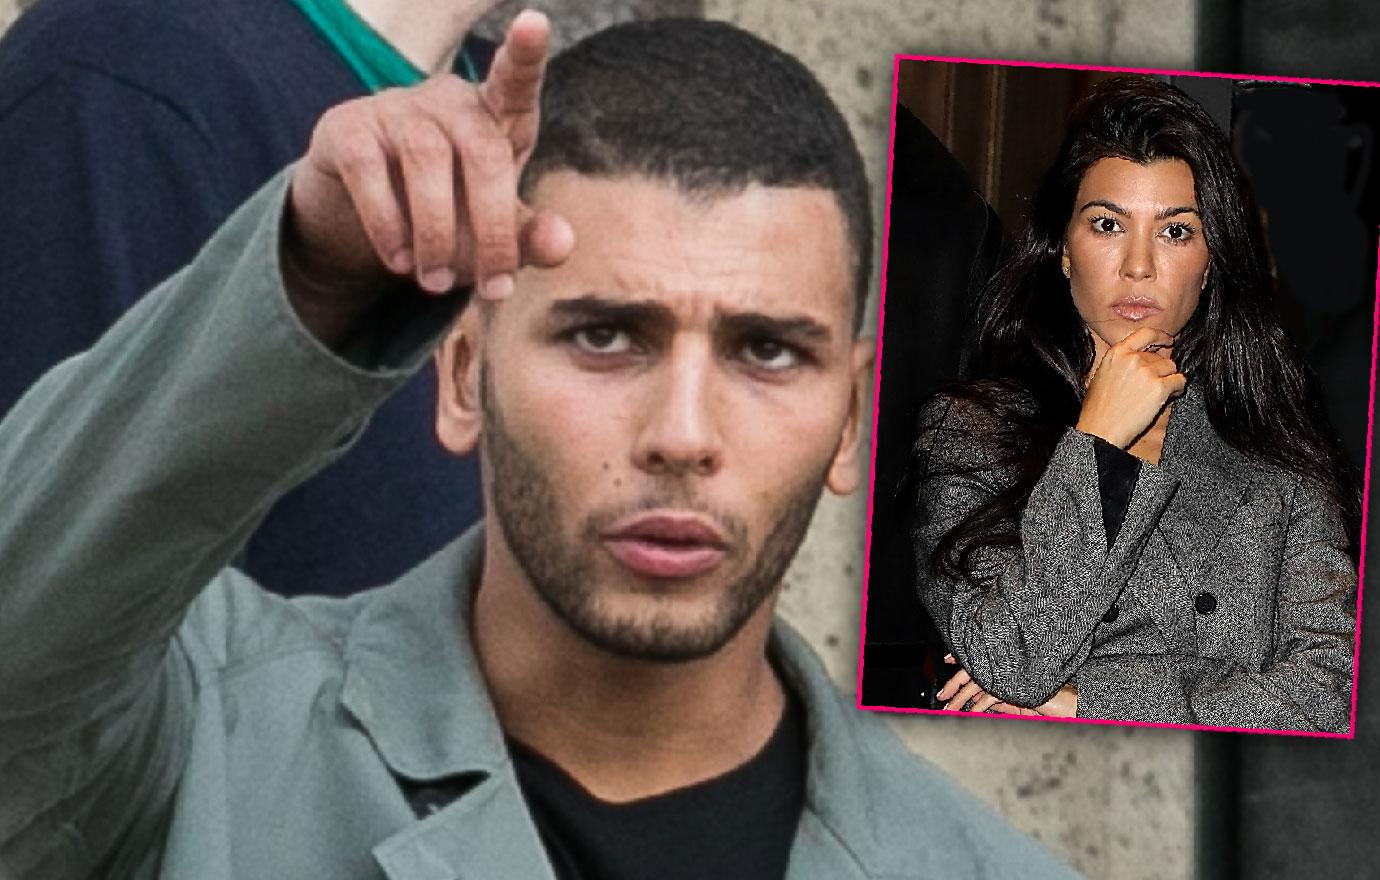 Kourtney Ex Younes Bendjima Served With Lawsuit Over Alleged Assault